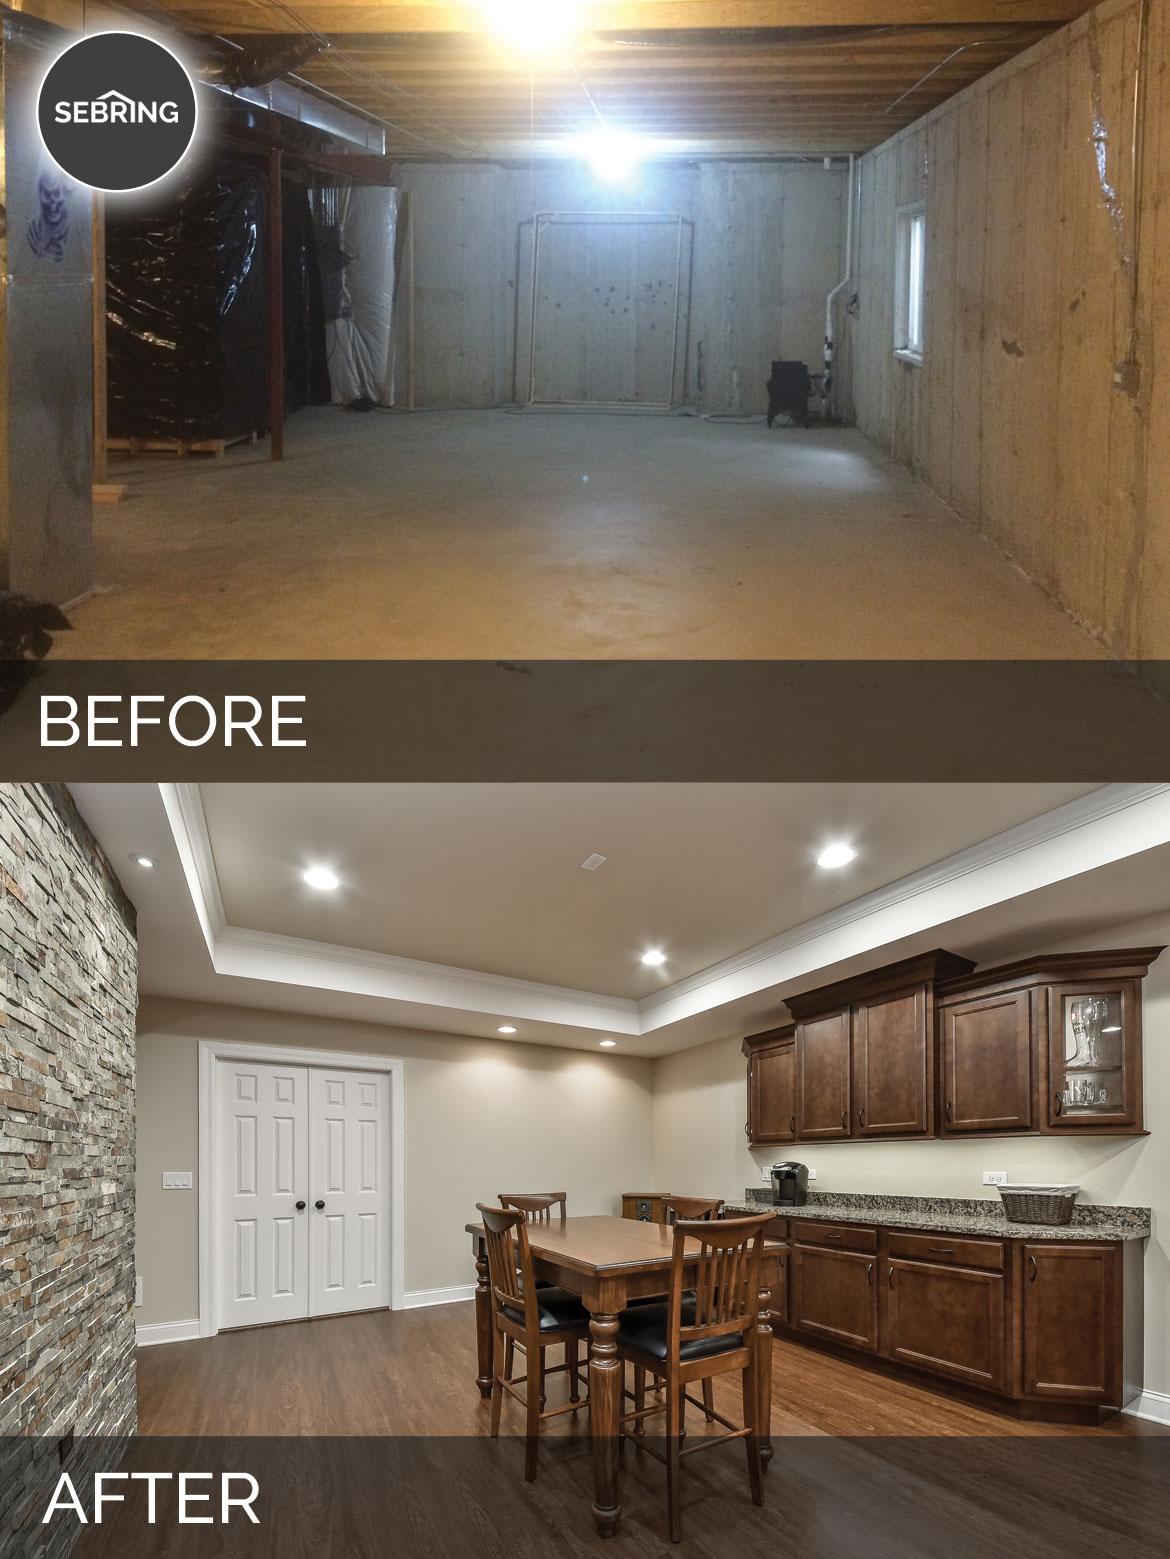 Before And After Diy Kitchen Renovation: Brian & Kelli's Basement Before & After Pictures